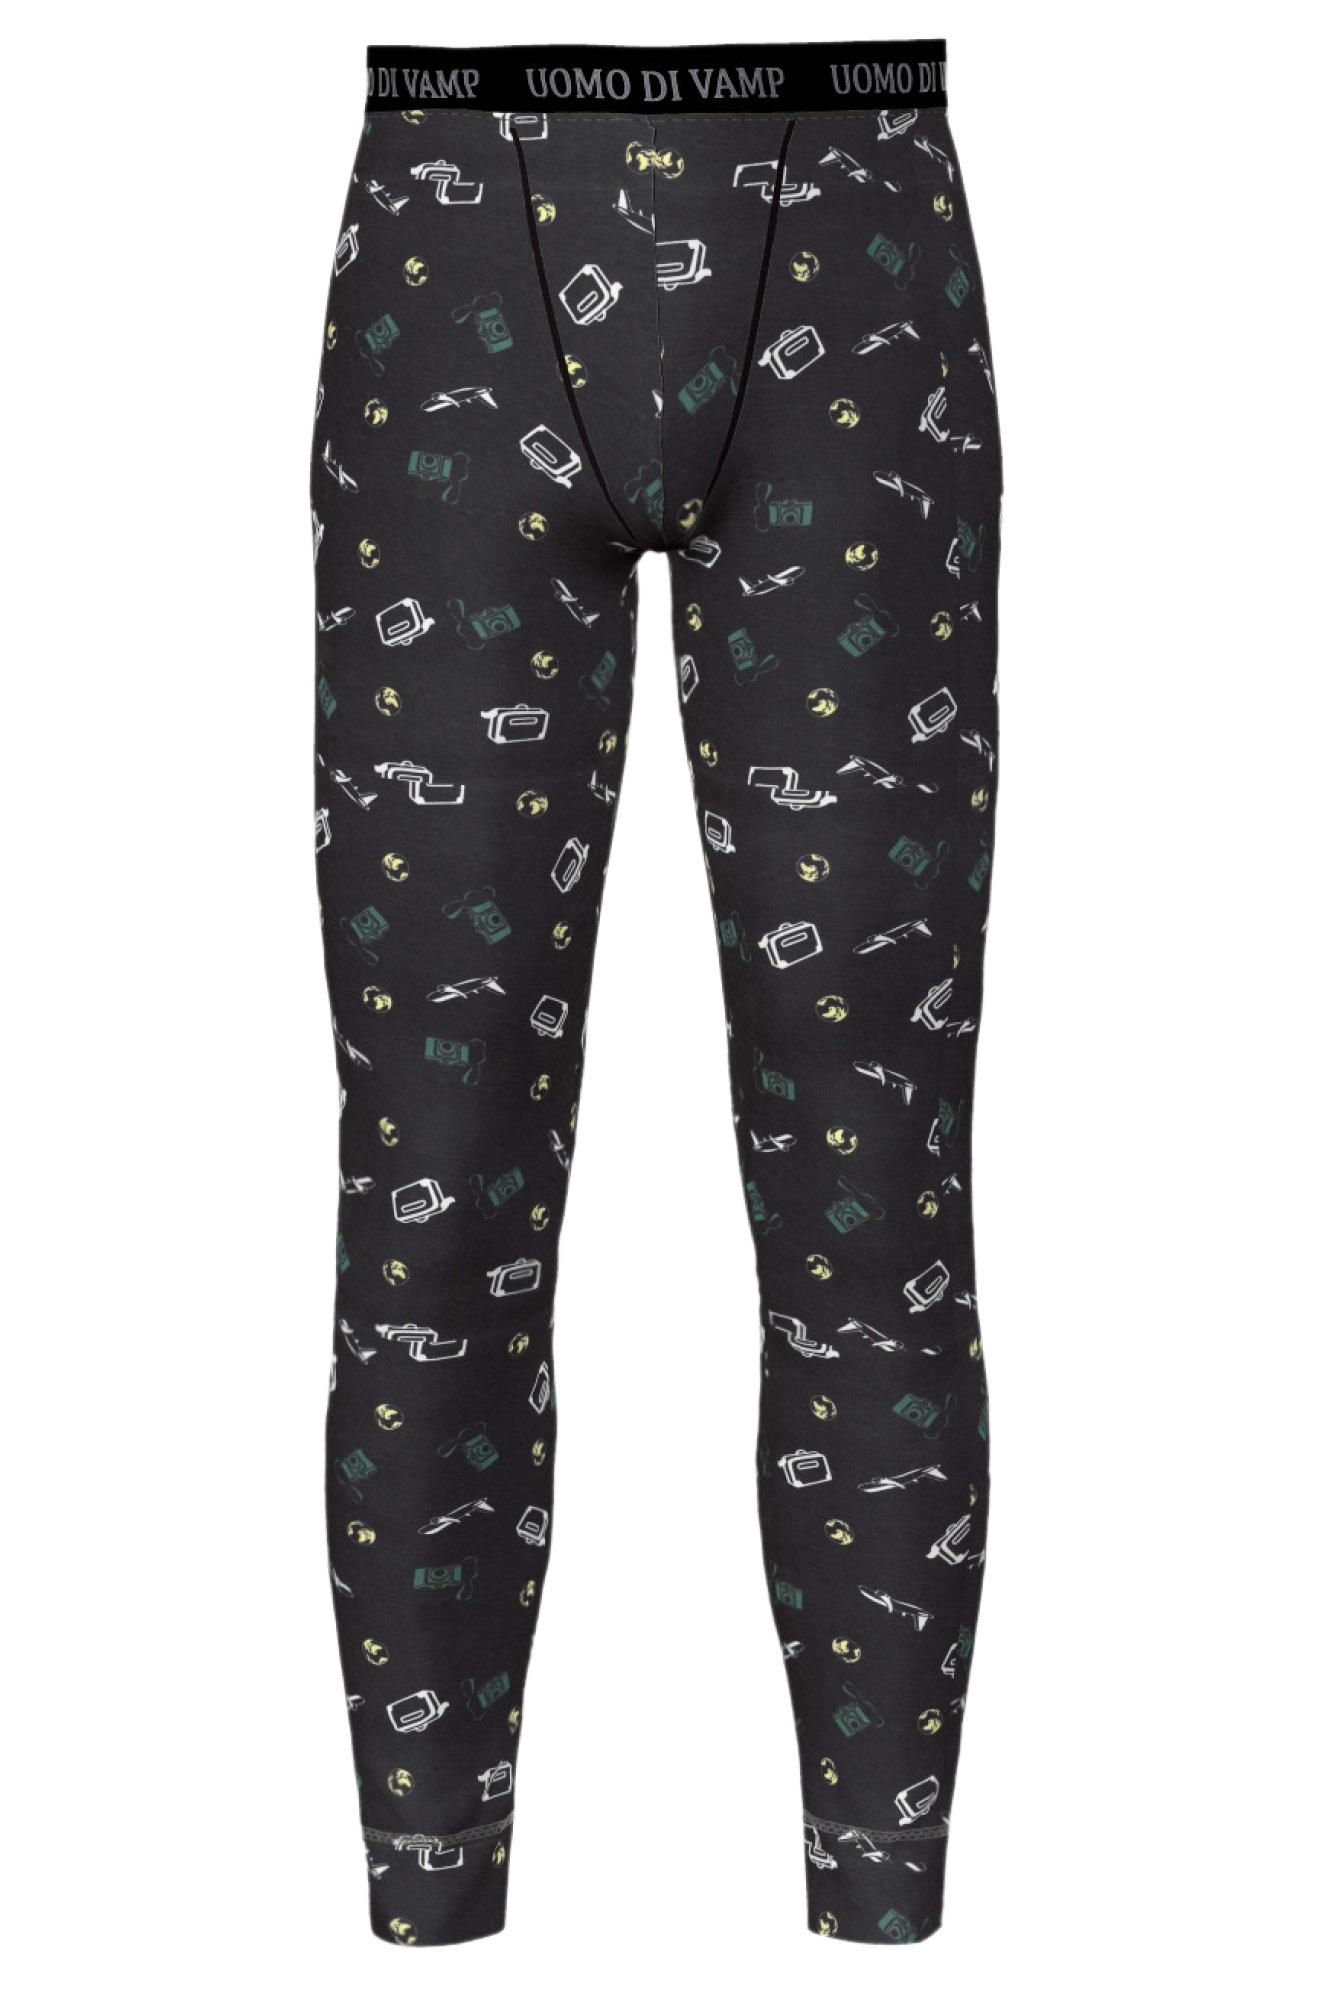 Men's Patterned Leggings